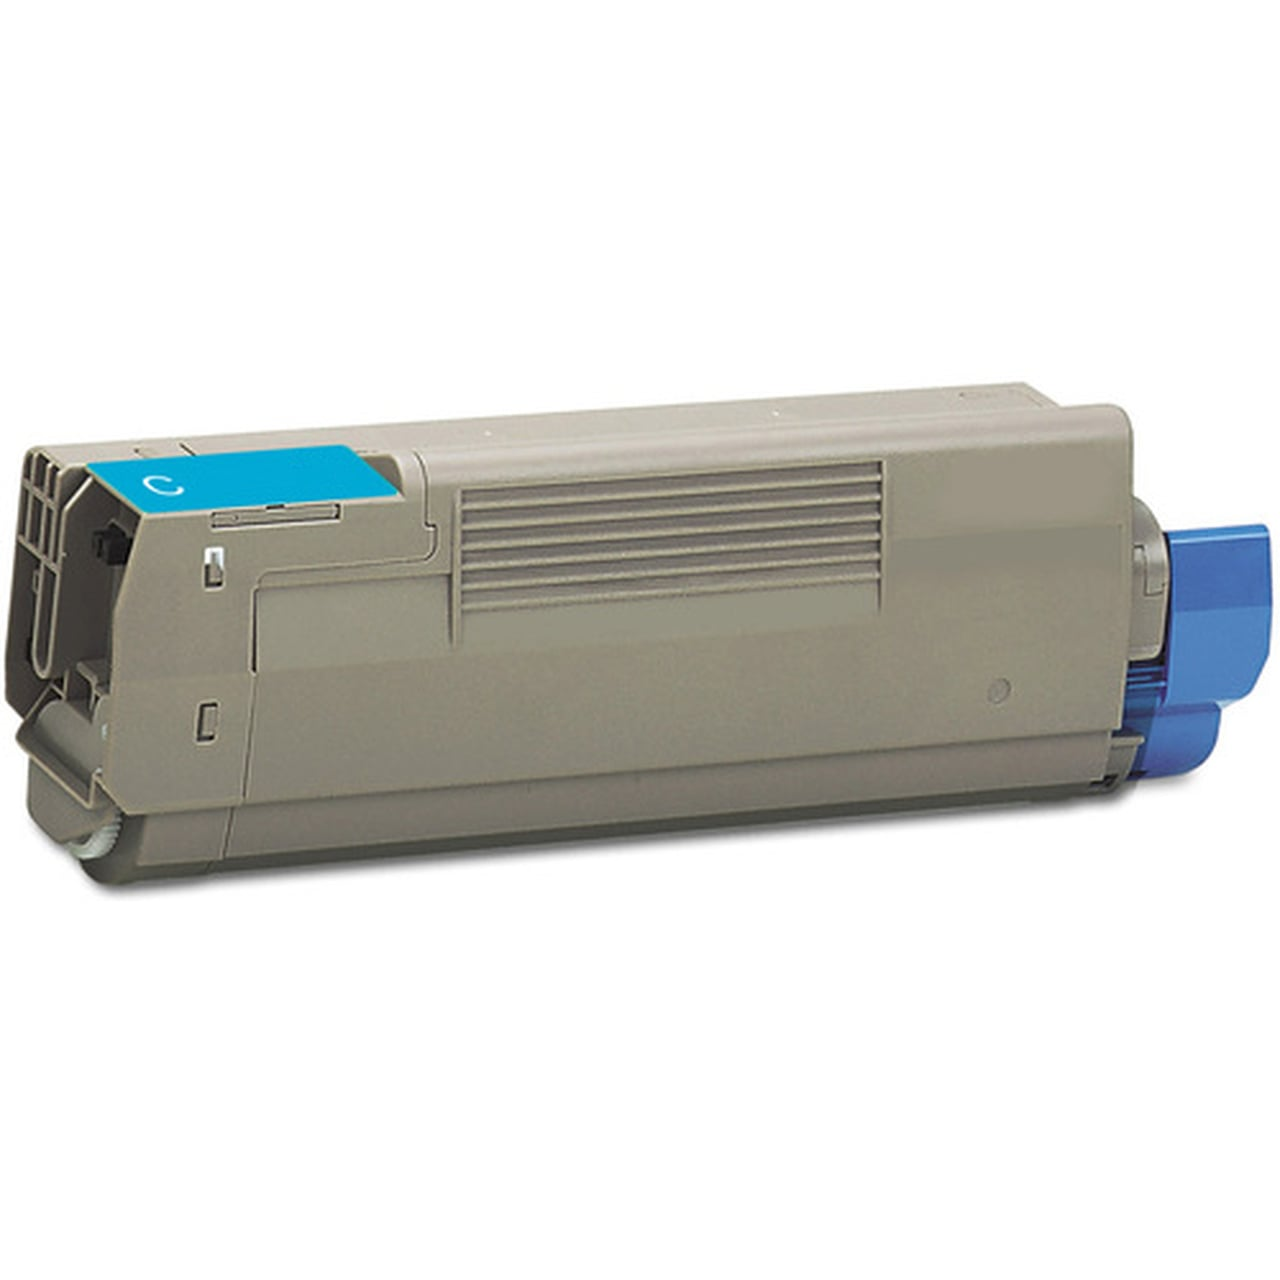 43865719 Toner Cartridge - Okidata Compatible (Cyan)